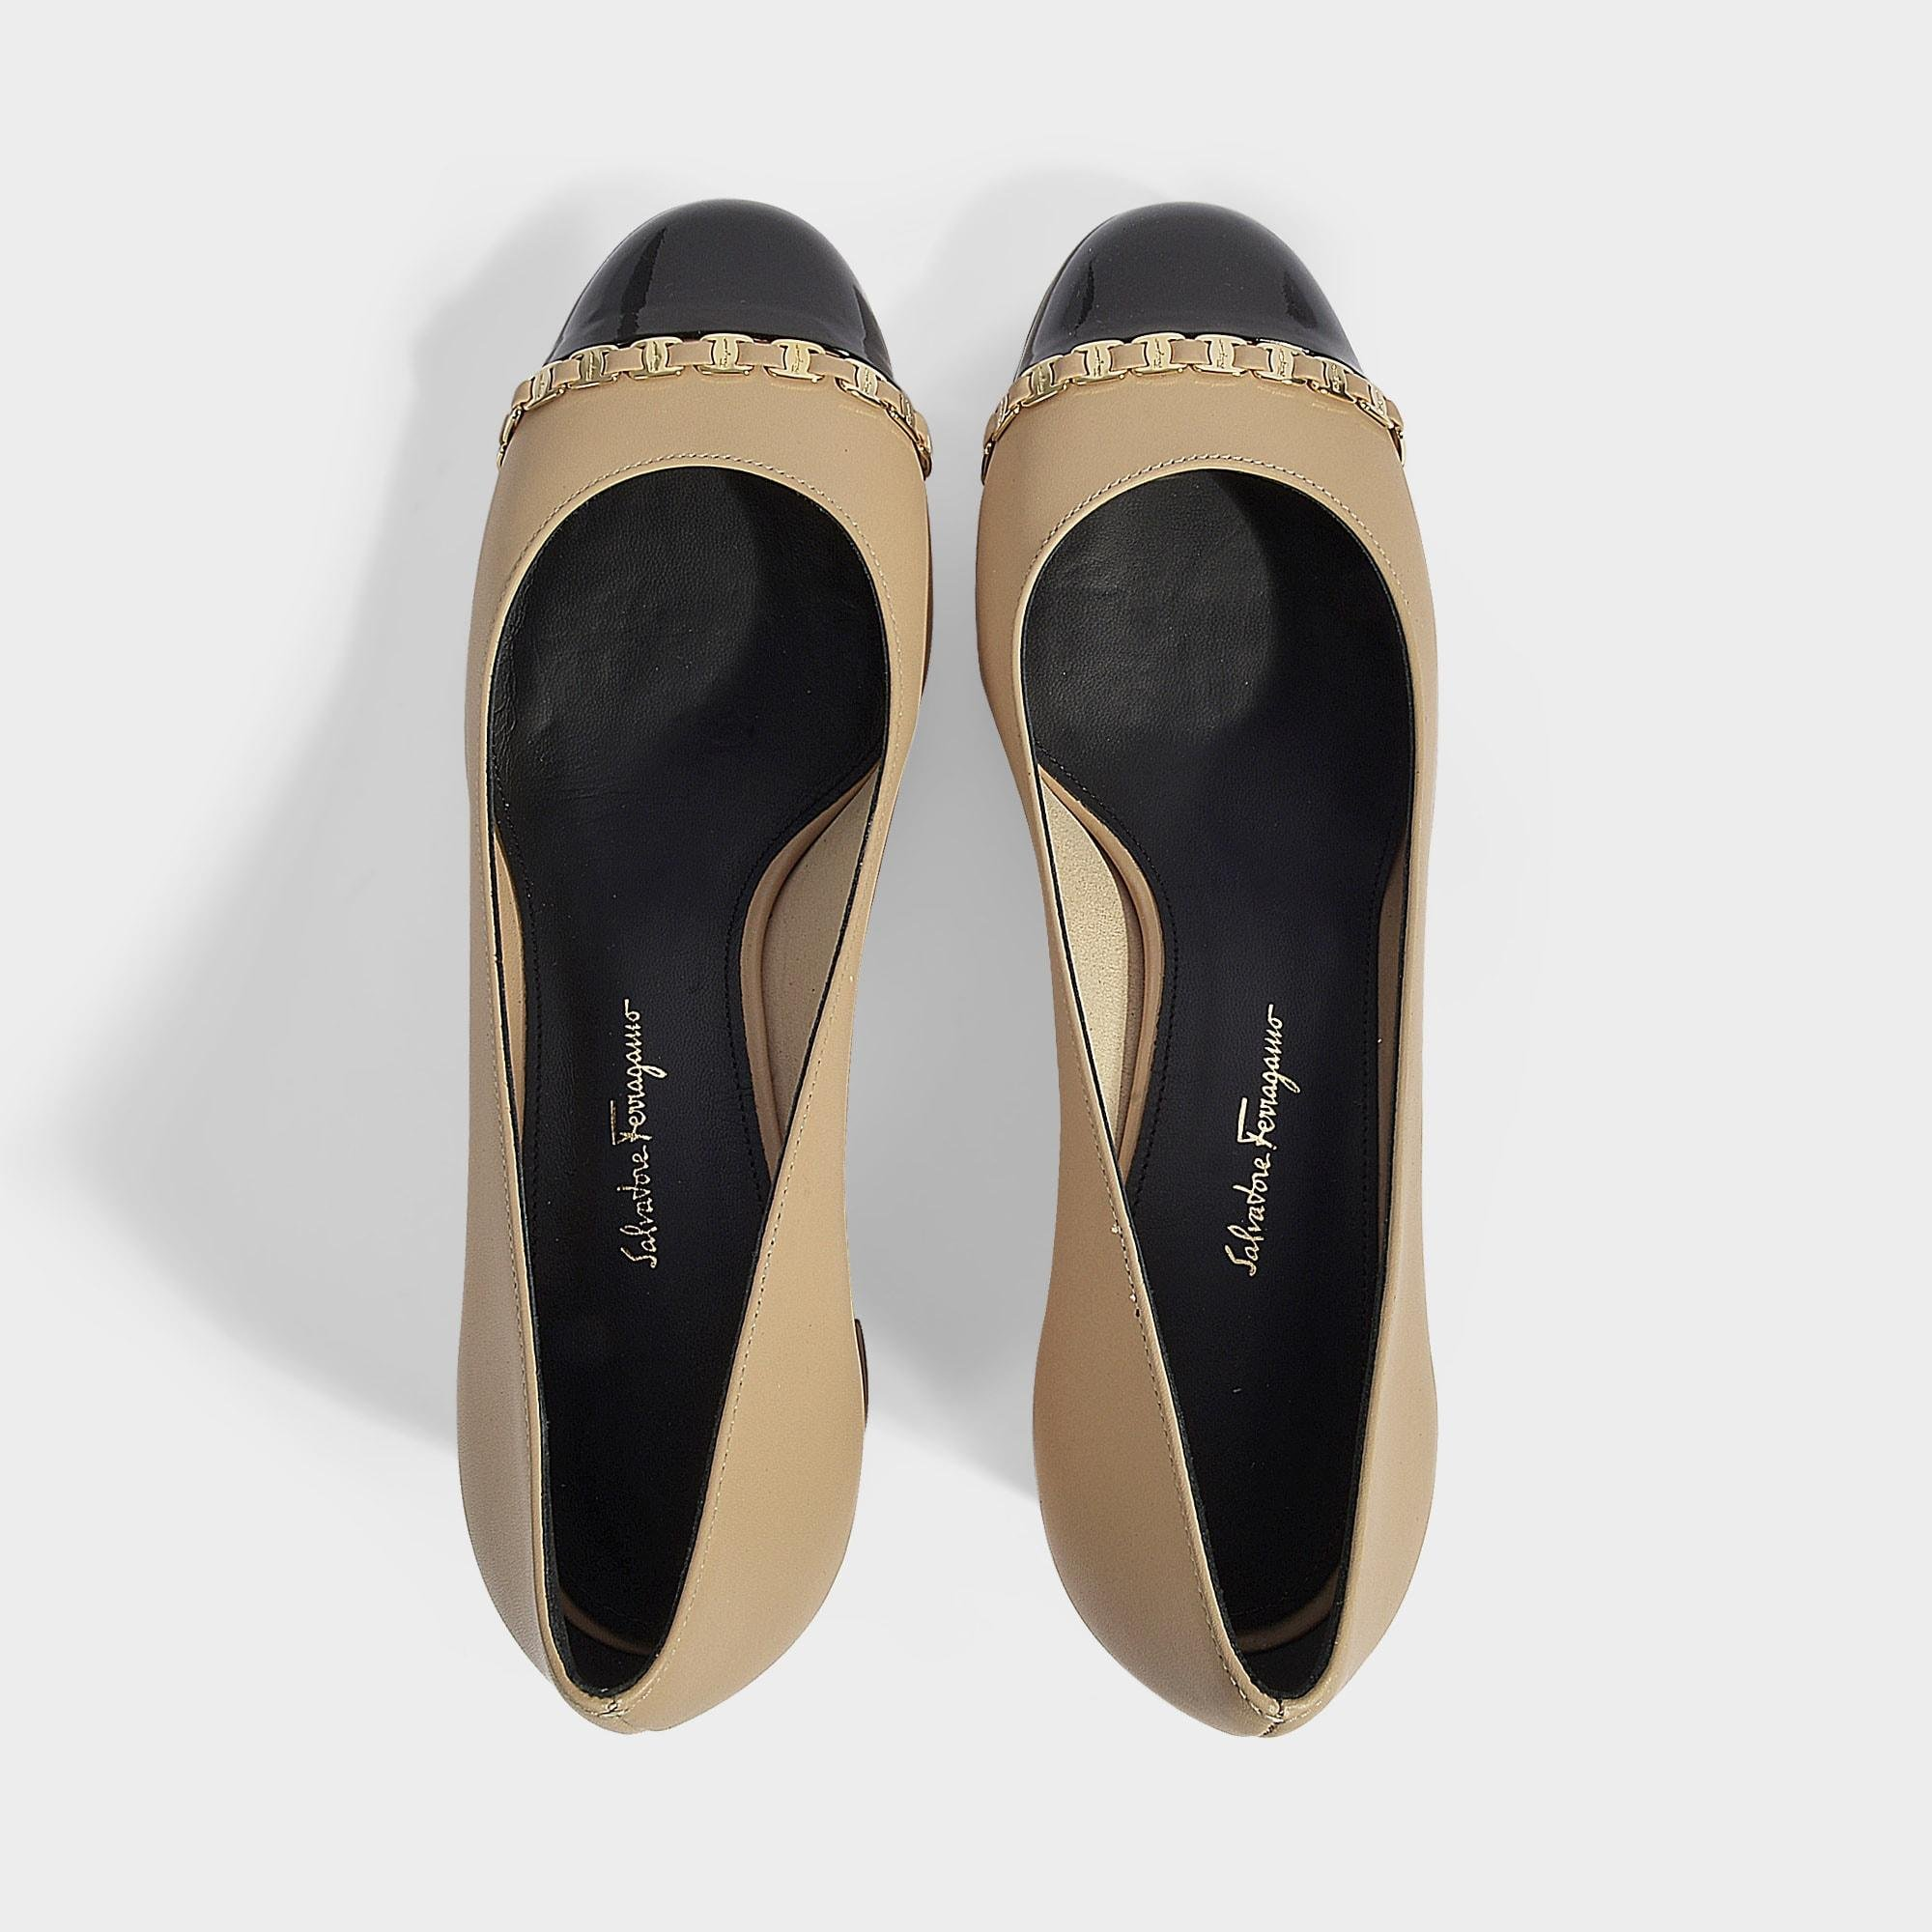 2d960069551 Ferragamo - Natural Avella Pumps With Chain Detail In Beige Nappa Leather -  Lyst. View fullscreen